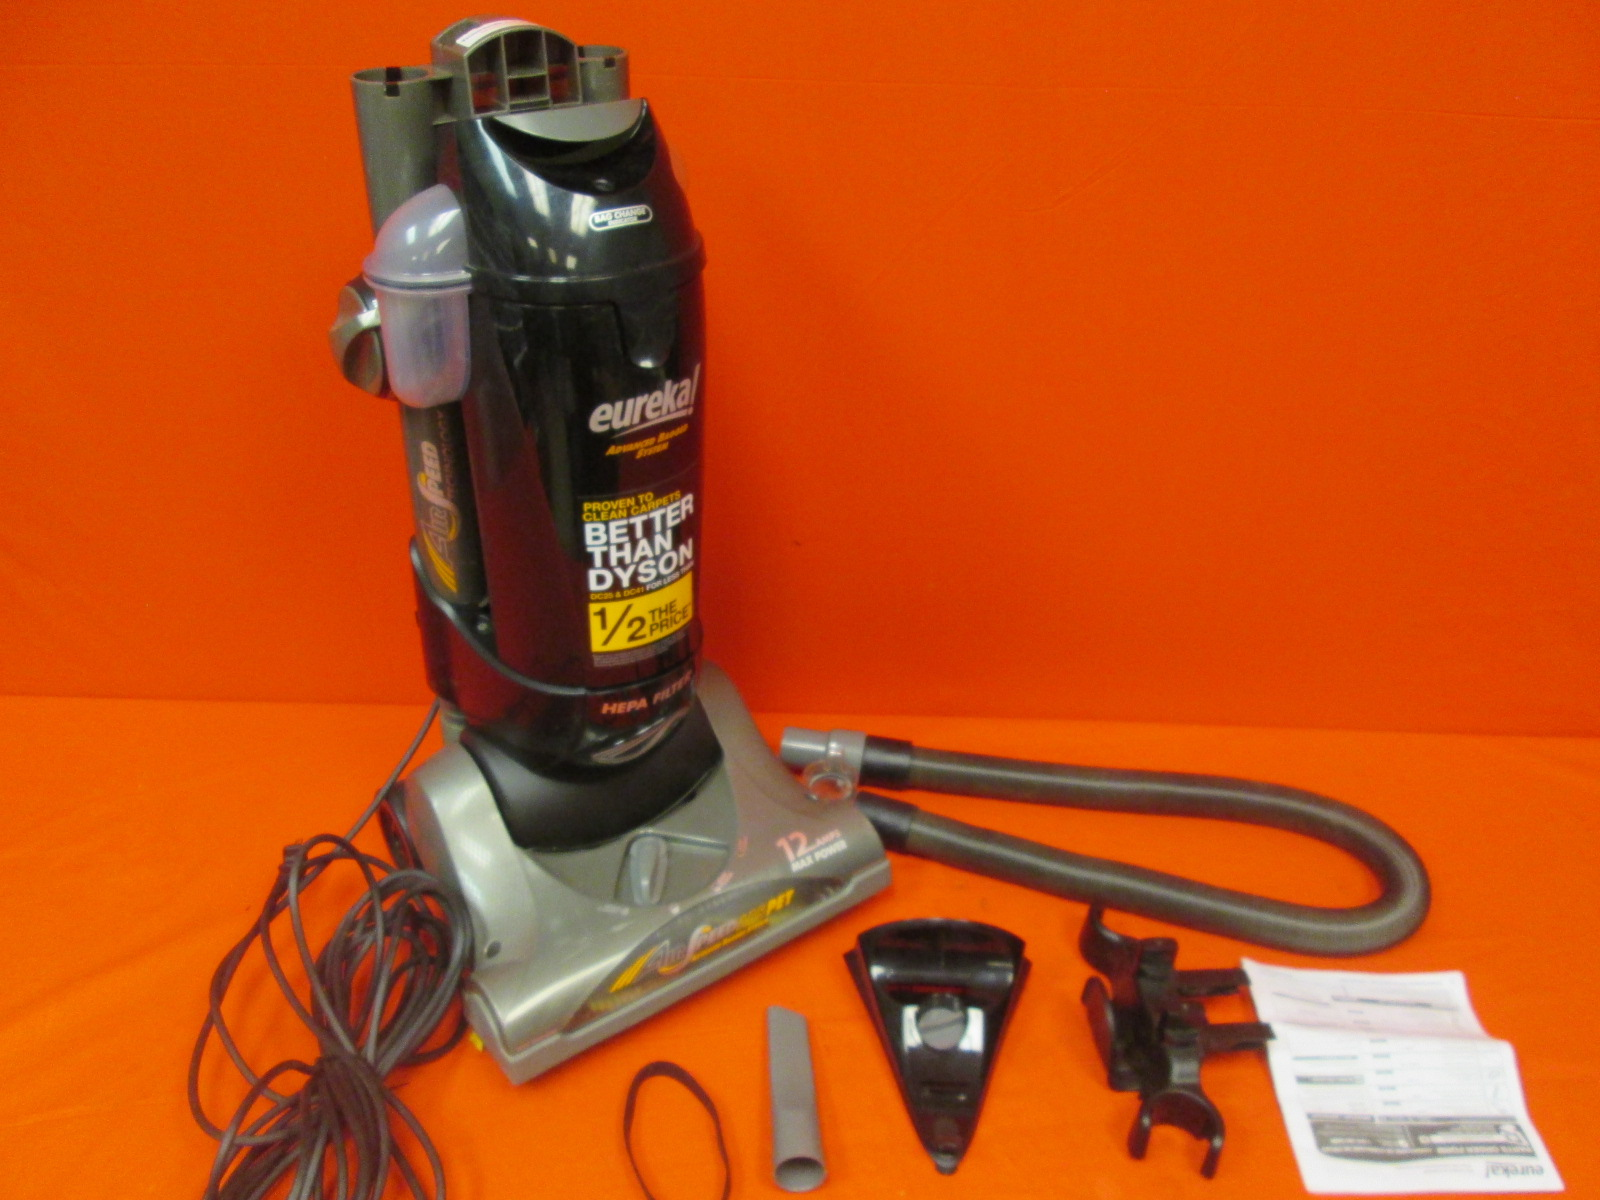 Eureka Airspeed Bagged Upright Vacuum AS1051A Incomplete